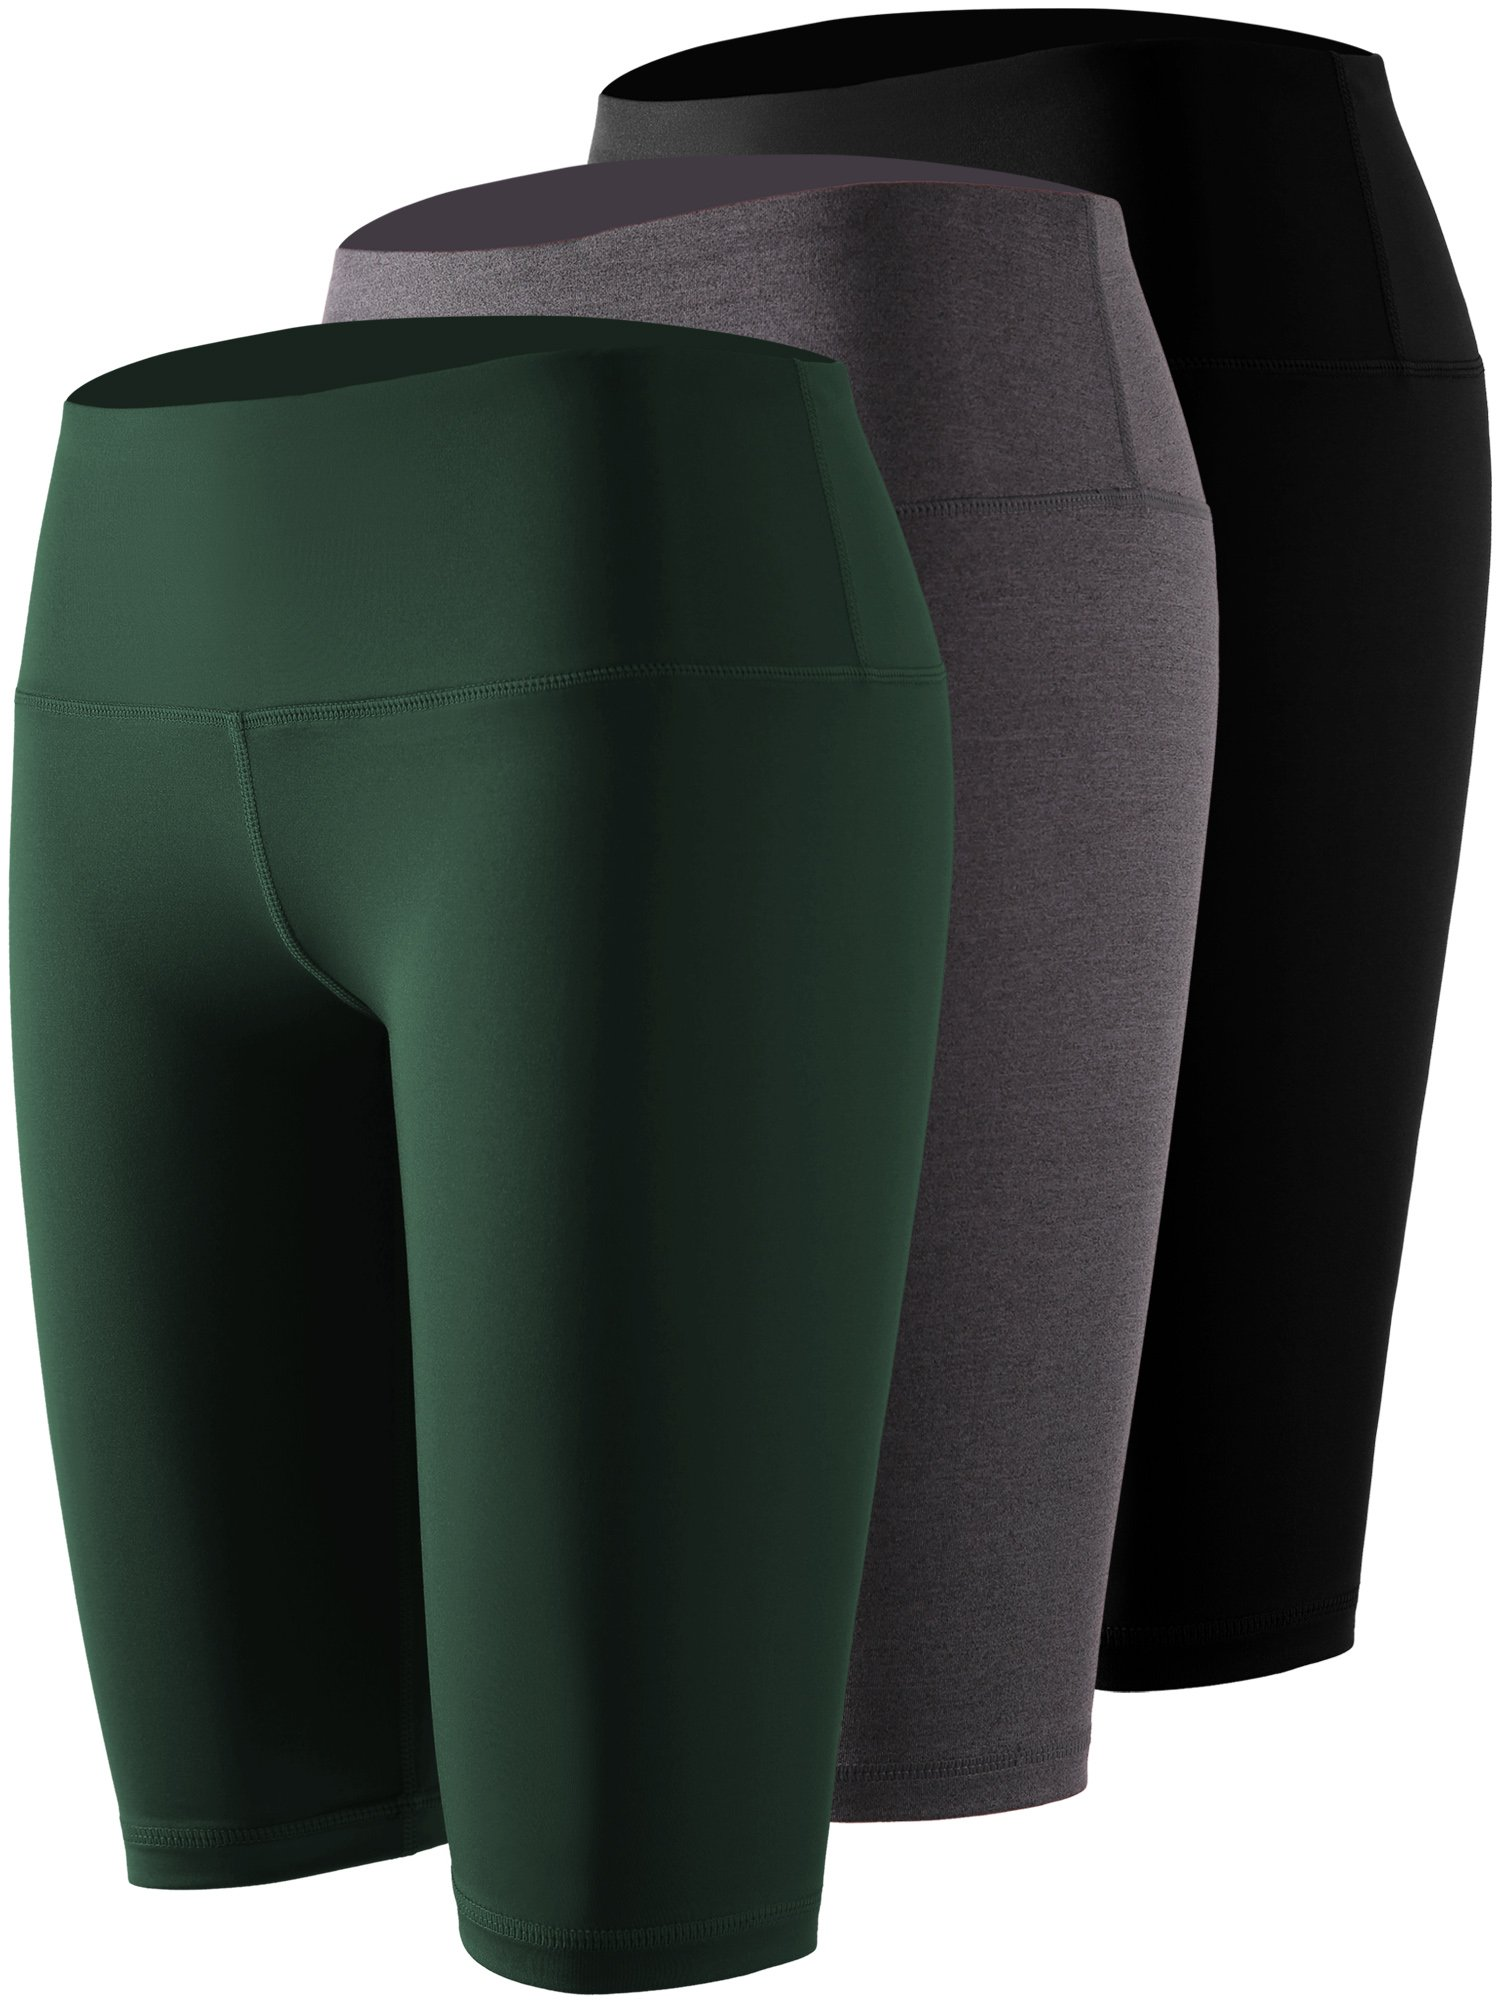 Cadmus Women's High Waist Athletic Sport Workout Shorts with Pocket,3 Pack,04,Black,Grey,Dark Green,Small by Cadmus